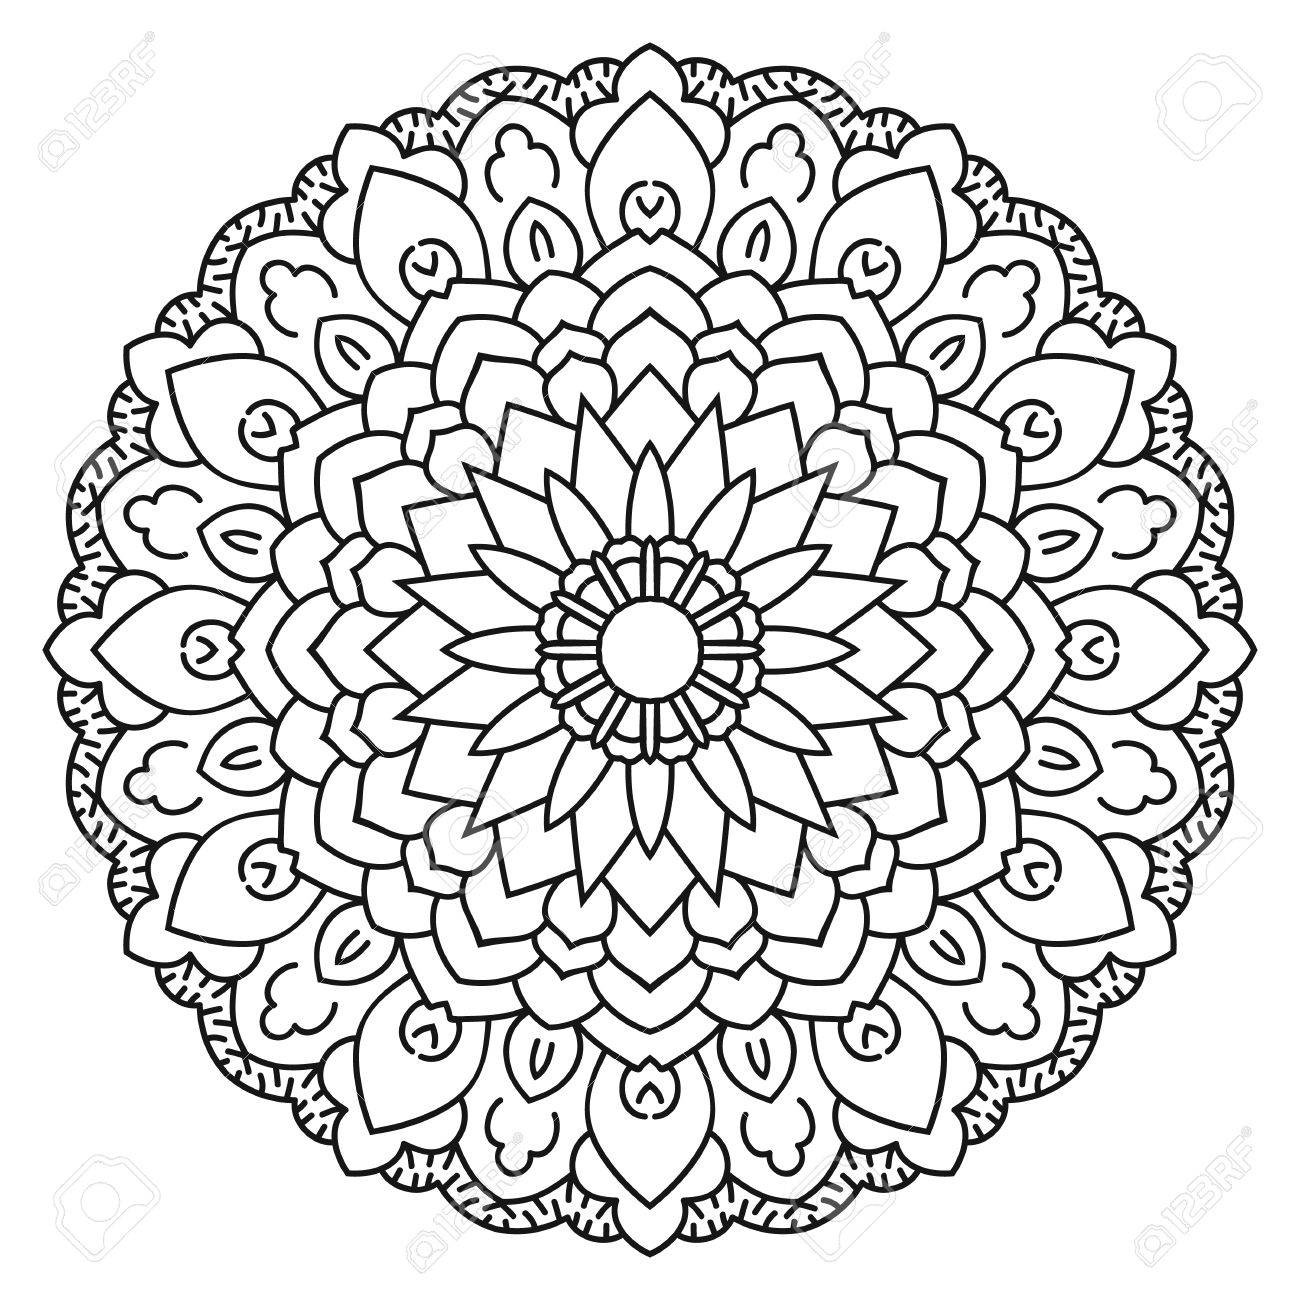 1300x1300 Coloring Pages Islamic Patterns Best Of Symmetrical Circular